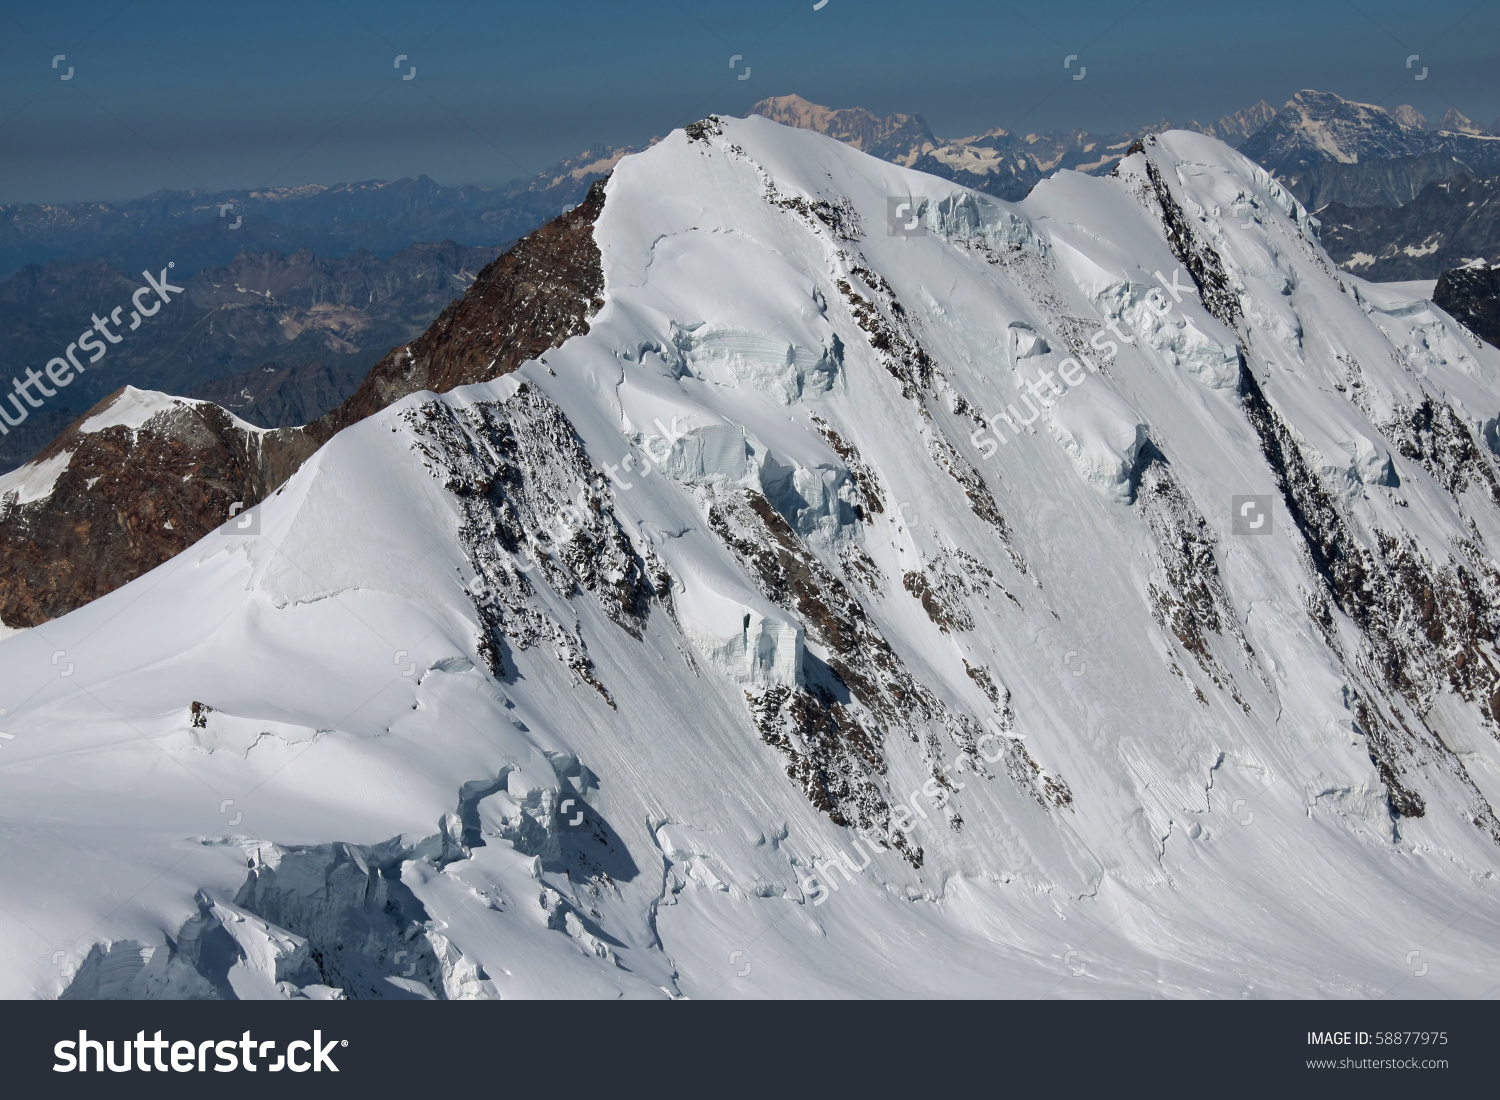 North Face Of Lyskamm From Capanna Margherita On Monte Rosa.